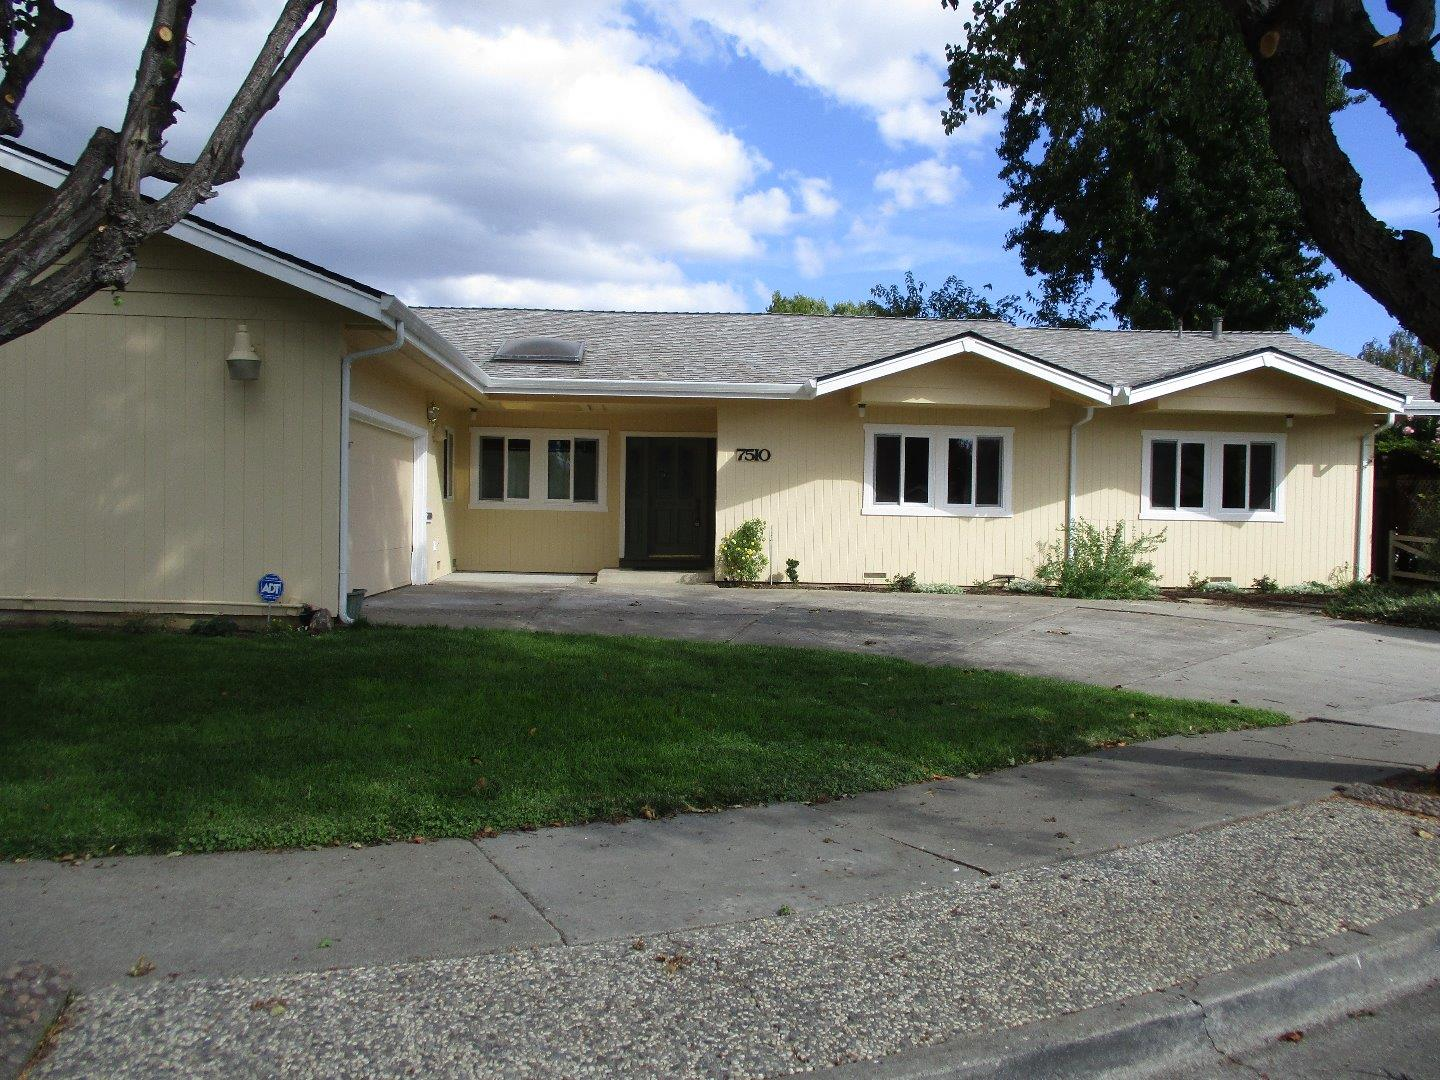 Single Family Home for Rent at 7510 Westwood Drive 7510 Westwood Drive Gilroy, California 95020 United States